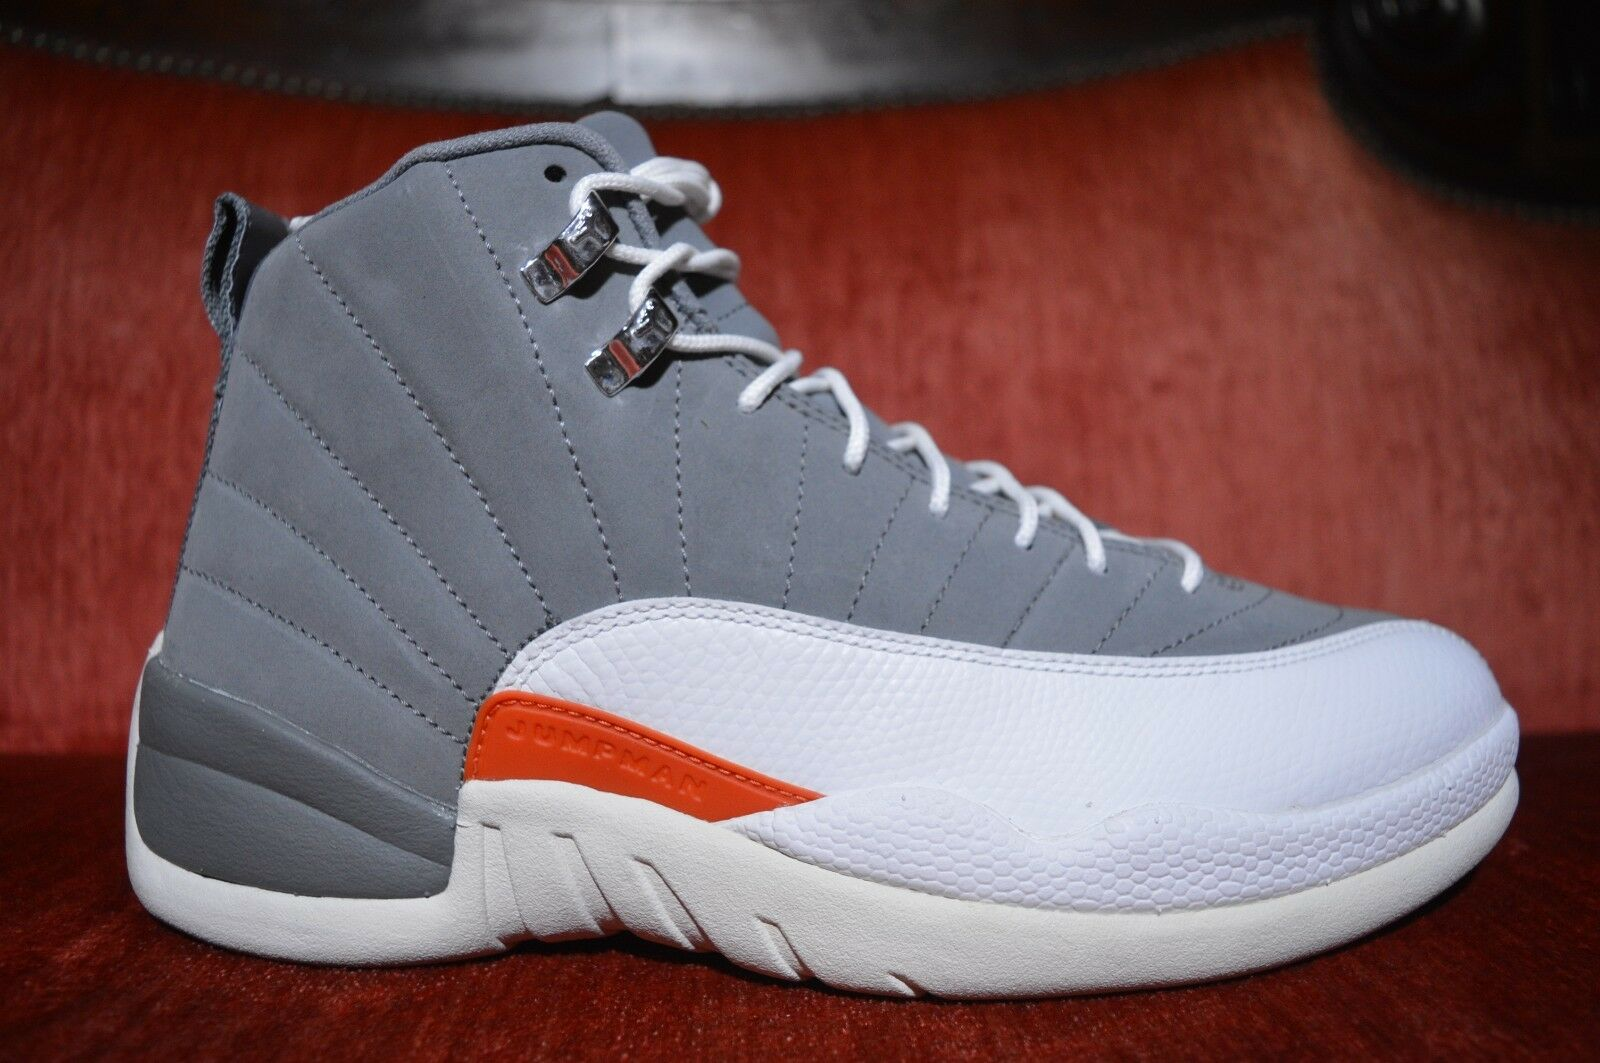 timeless design c6baa ff882 CLEAN Nike Air Jordan XII 12 Retro Cool Grey White-Orange Grey White